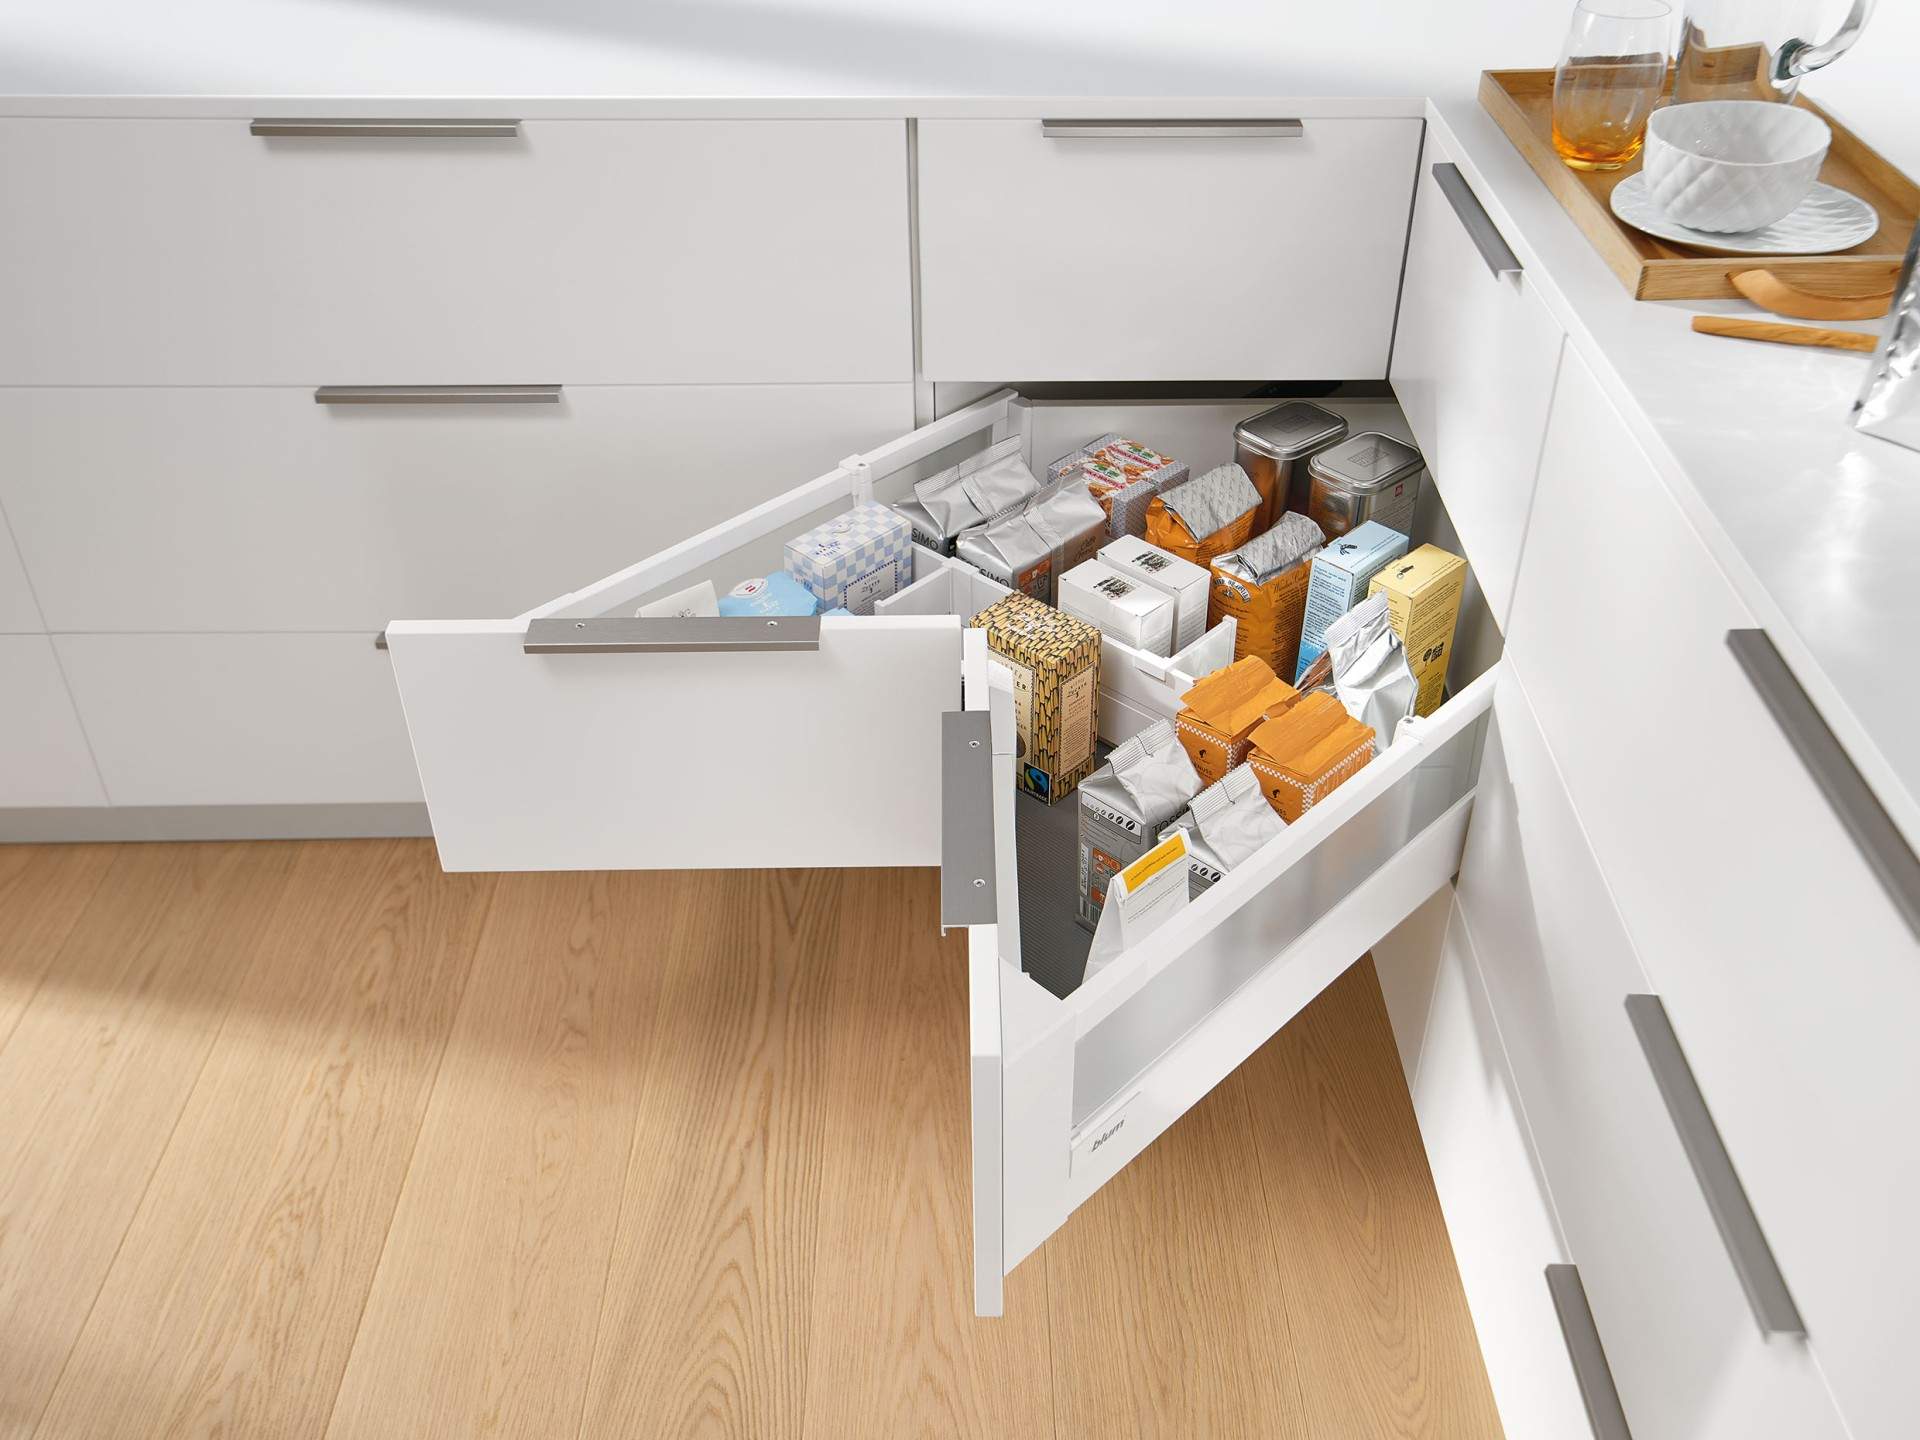 SPACE CORNER cabinet for provisions | Blum